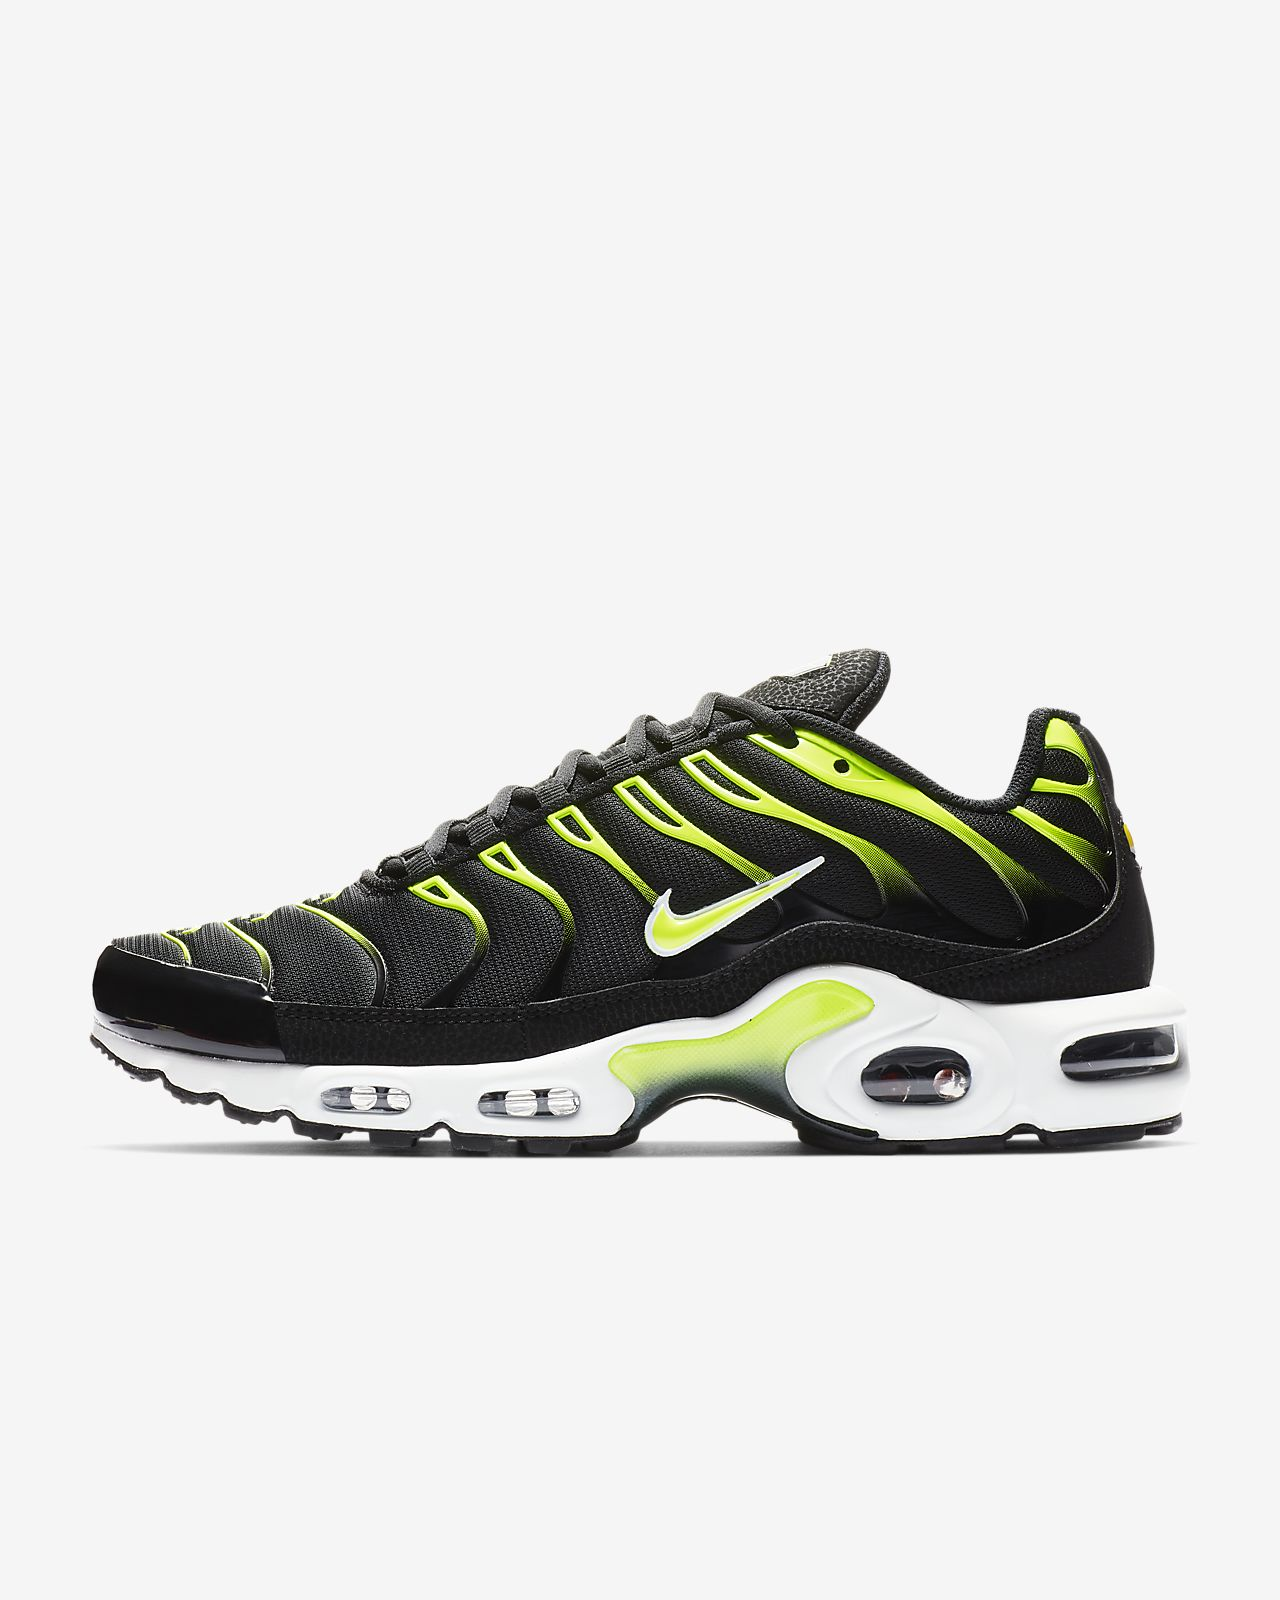 detailed look 9bdd1 d6307 ... Nike Air Max Plus Men s Shoe